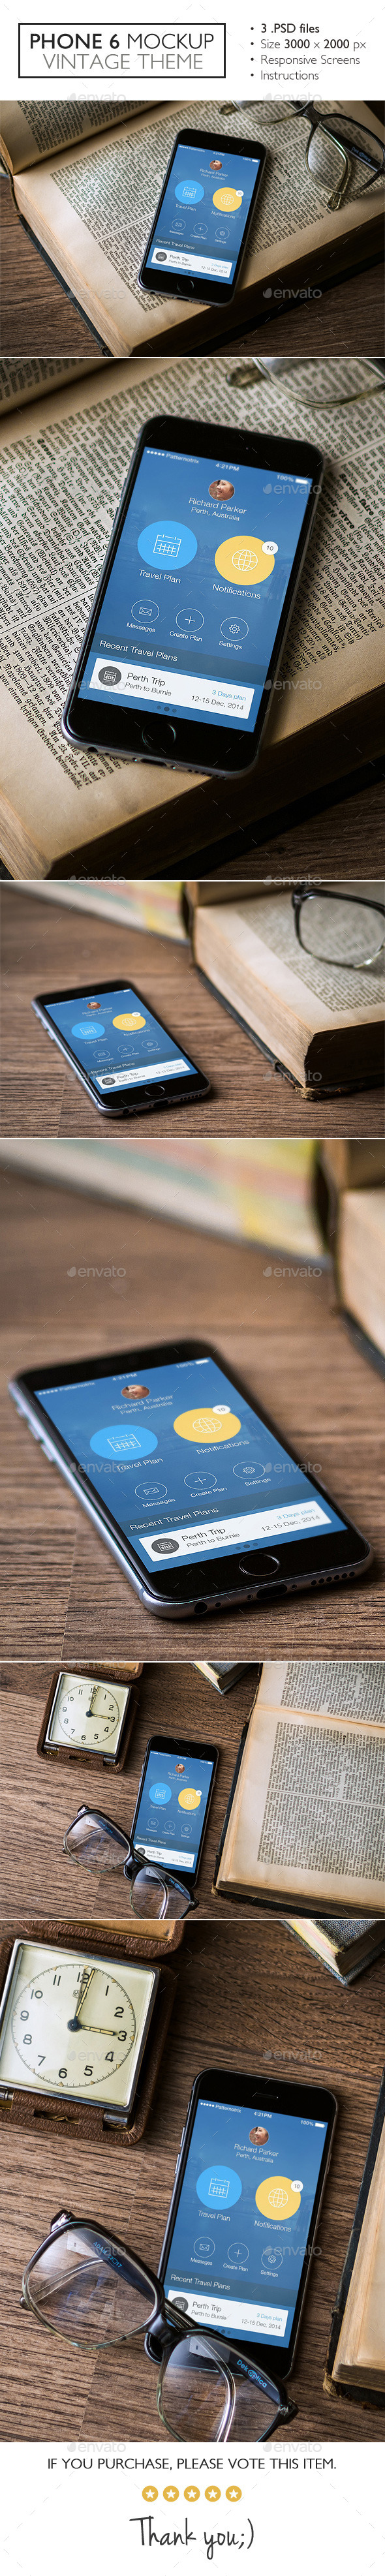 Phone 6 Mockup Vintage Theme - Product Mock-Ups Graphics